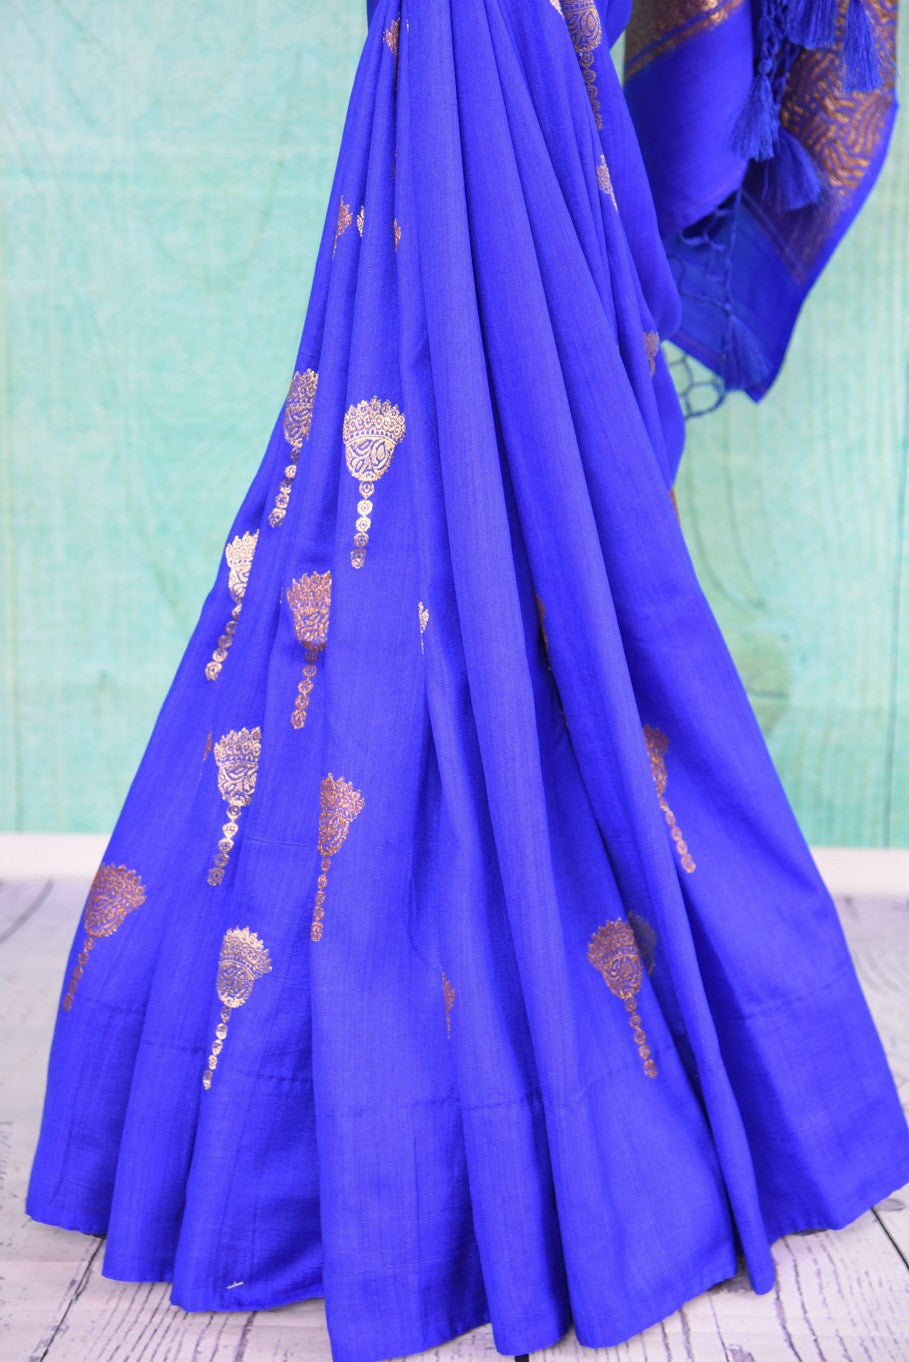 90D441 Royal and bold blue sari with traditional golden motifs. The tussar georgette saree, available in USA at Pure Elegance makes for a perfect ethnic outfit for Indian weddings and functions.